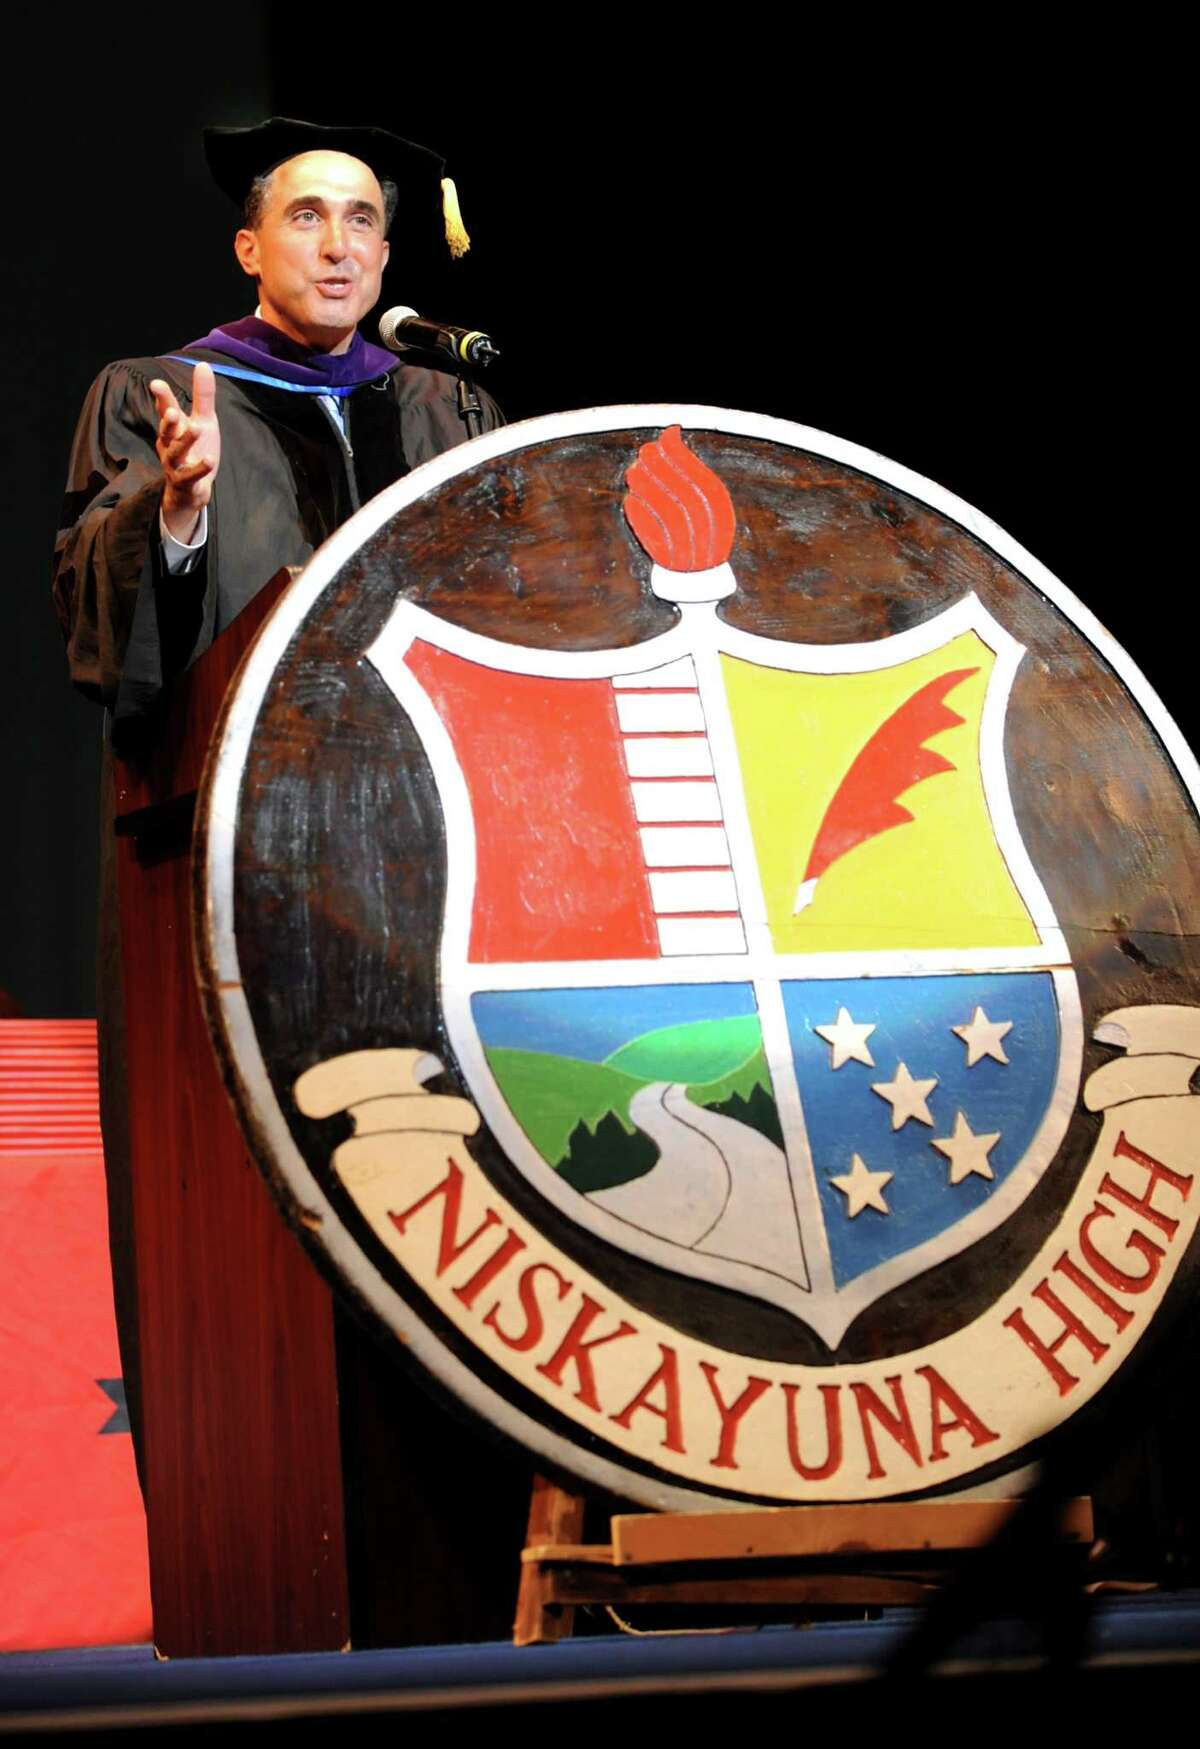 Niskayuna School District: No. 6 . Adults 25+ who have the following degrees: High School Diploma, 97.46%, Bachelor's Degree, 60.44%, Advanced Degree, 33.29%